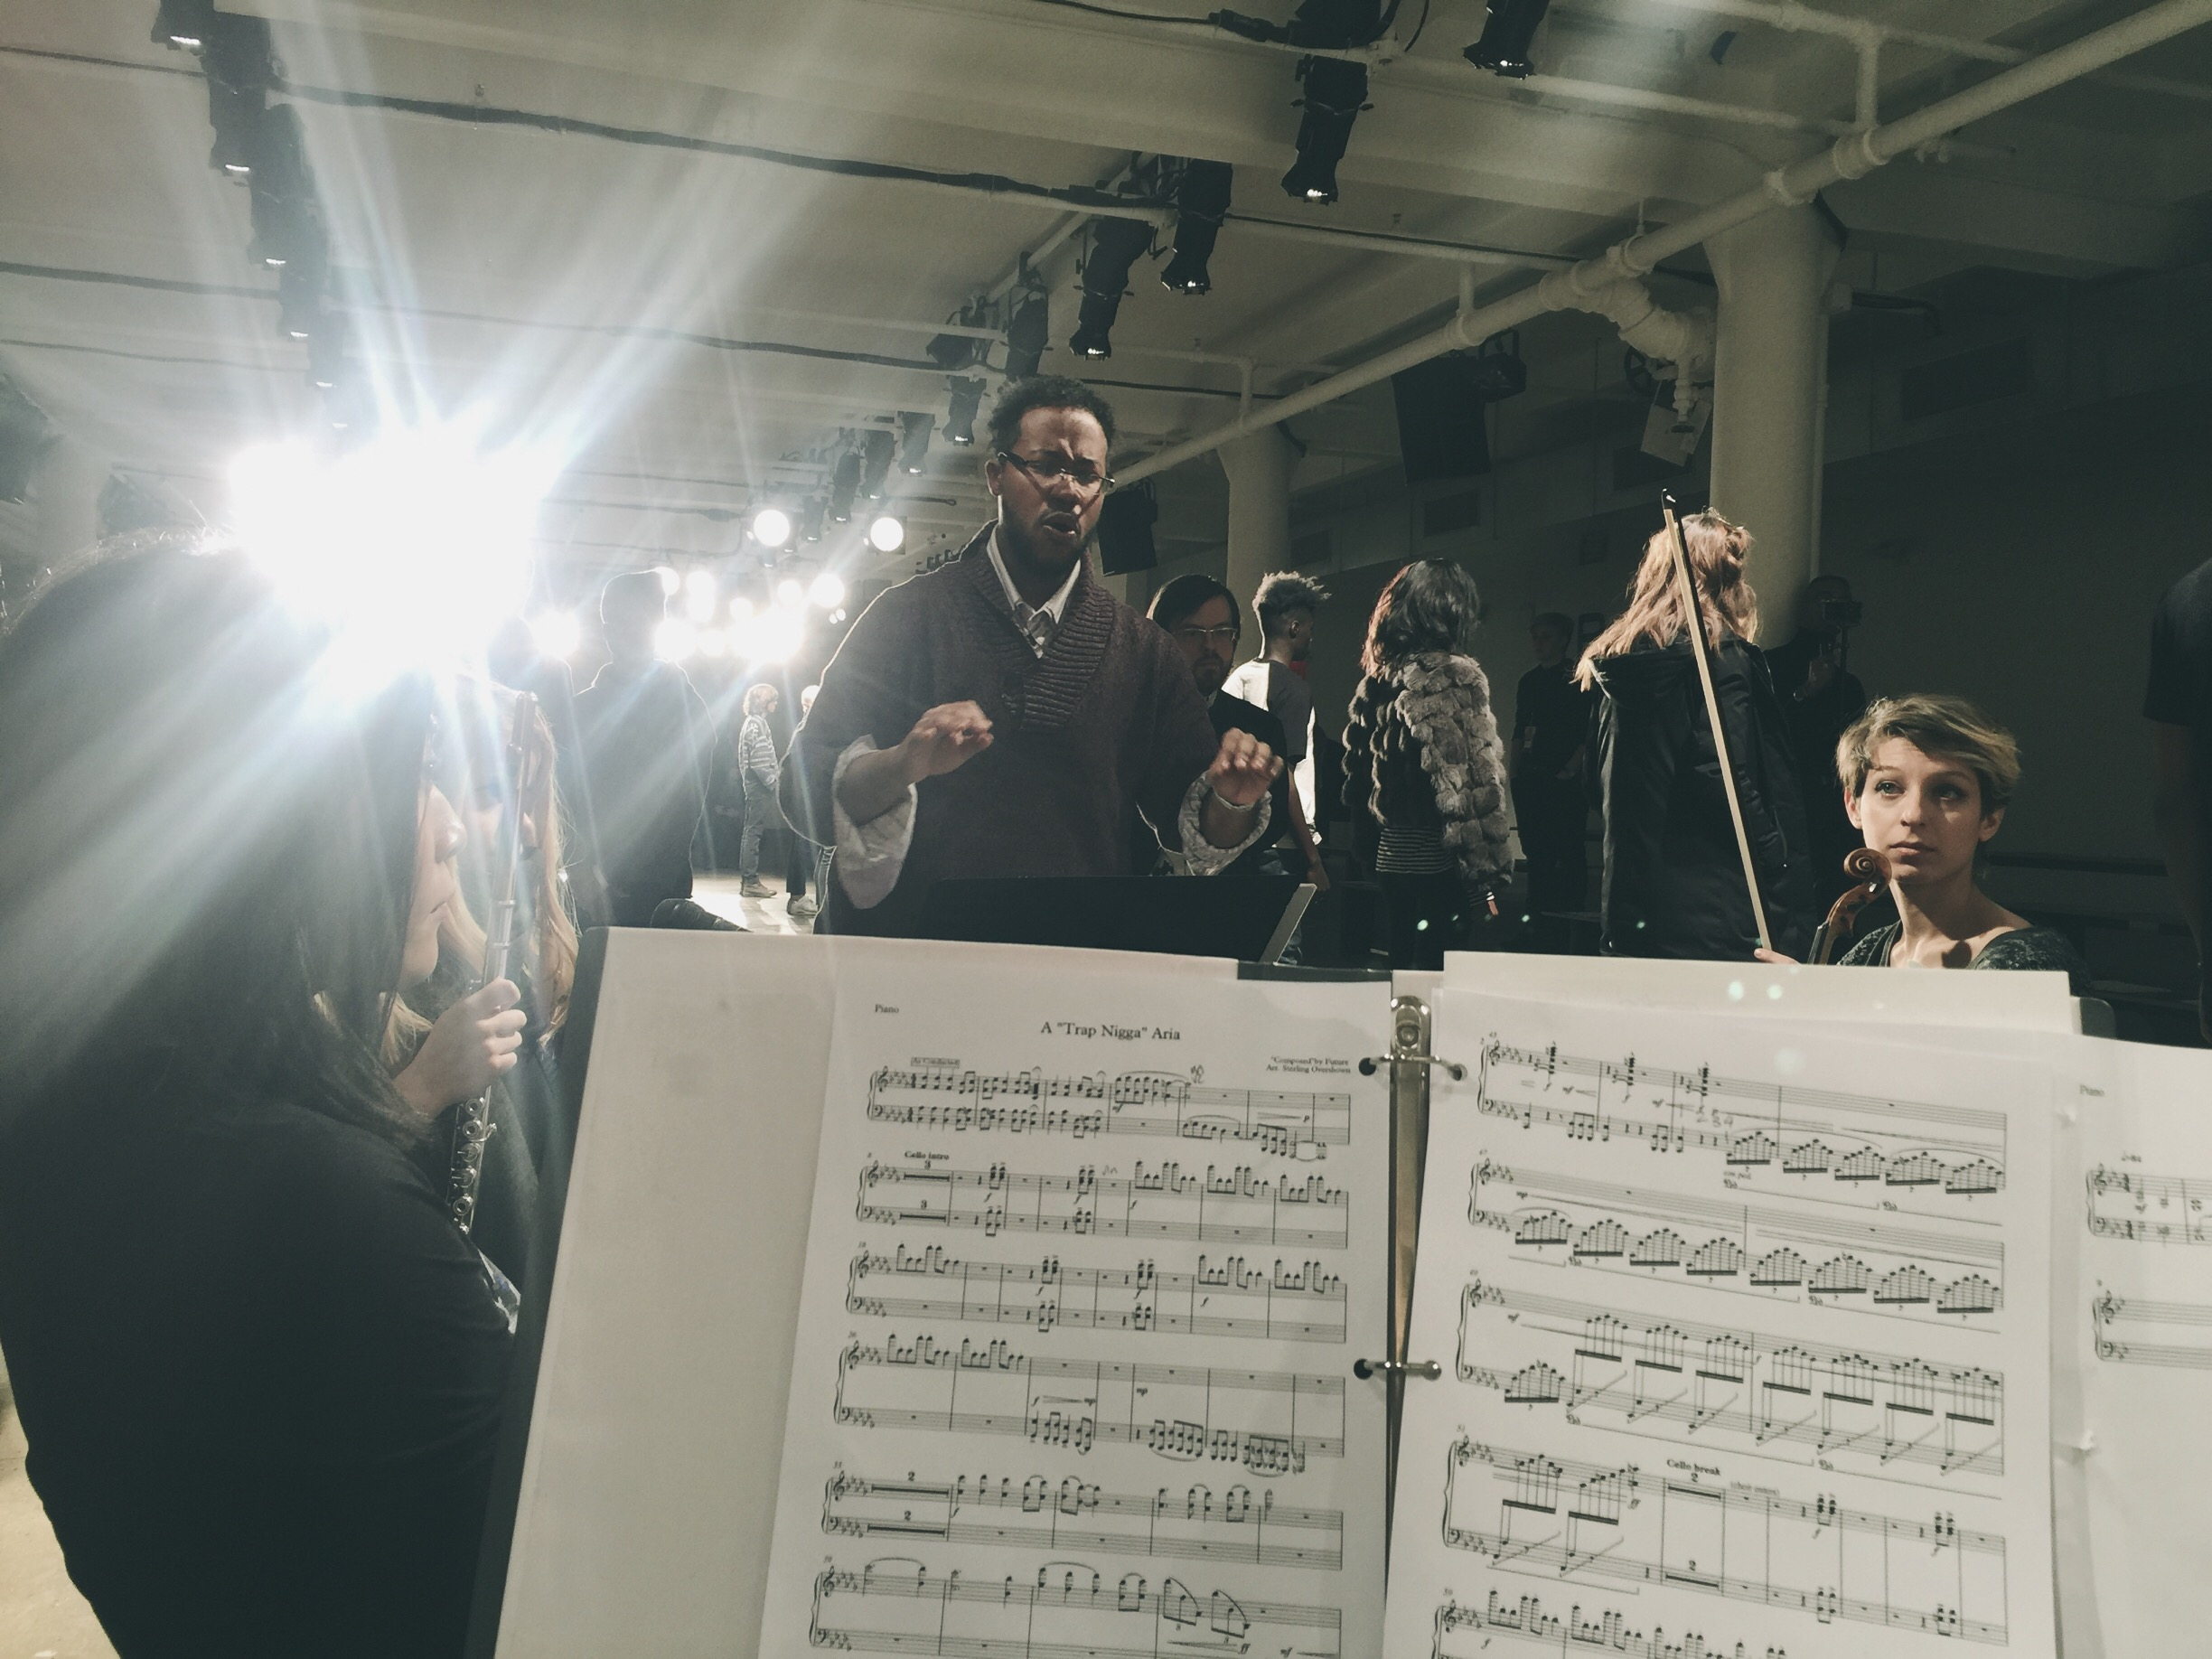 Sitzprobe, Sterling Overshown conducting